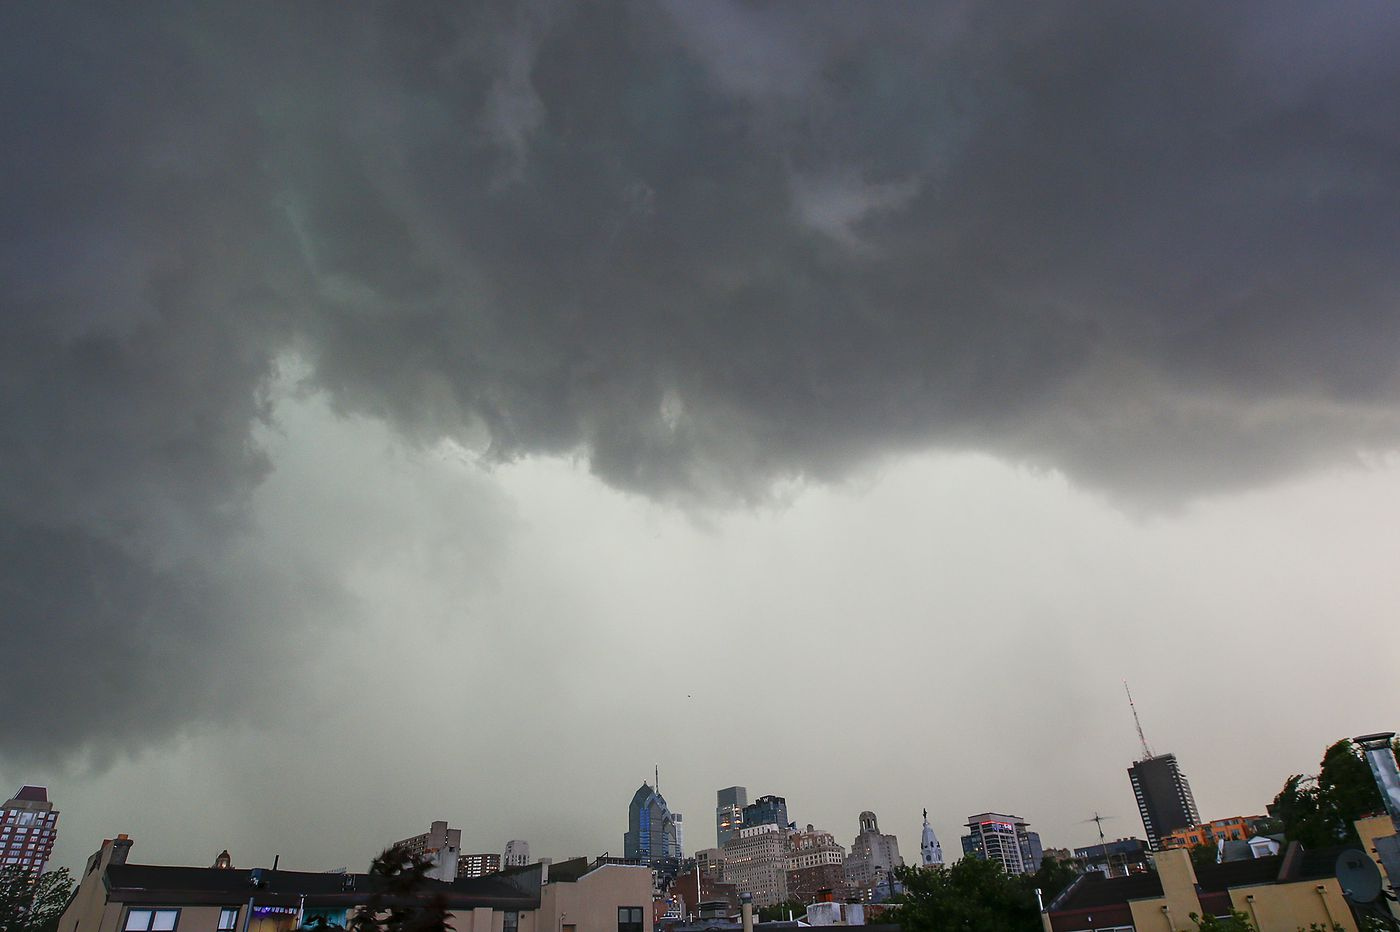 Thursday has a chance of damaging storms; Wednesday's brought deaths, but no tornado in Philly region